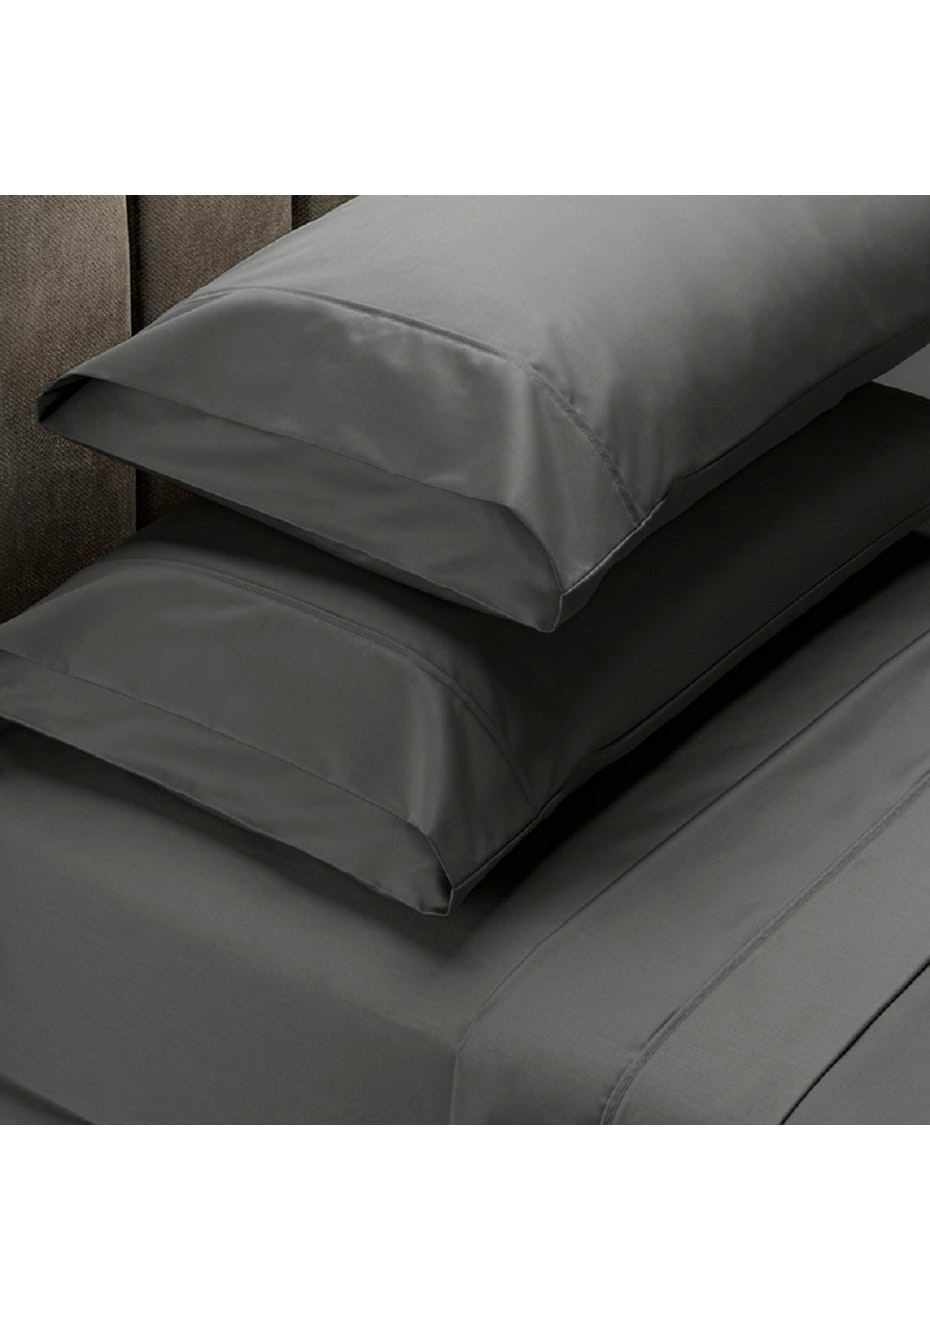 Park Avenue 1000 Thread count 100% Egyptian Cotton Sheet sets Queen - Granite